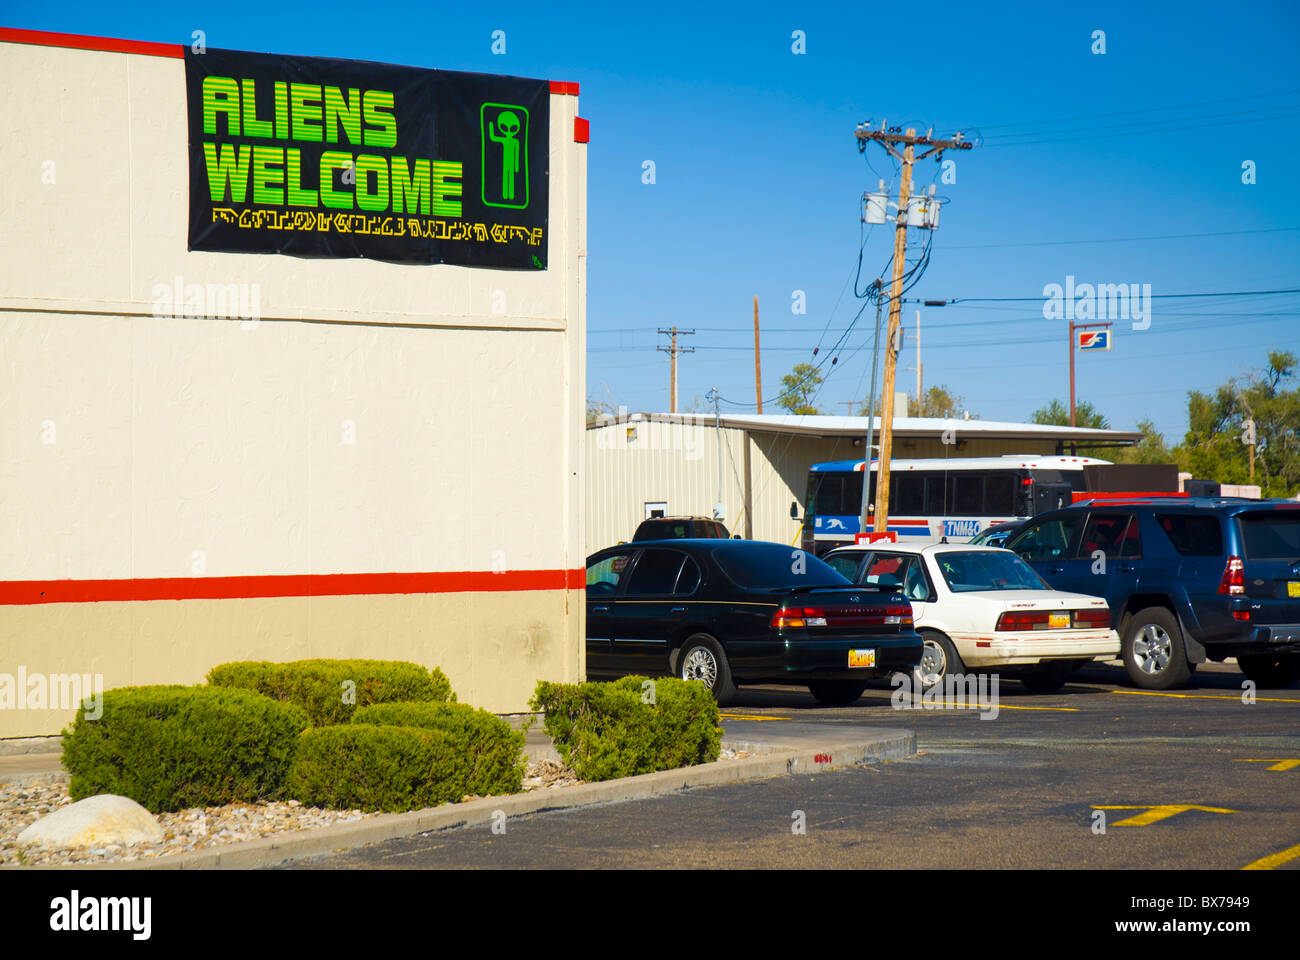 Arbys Restaurant, Aliens Welcome sign, Roswell, New Mexico, United States of America, North America - Stock Image